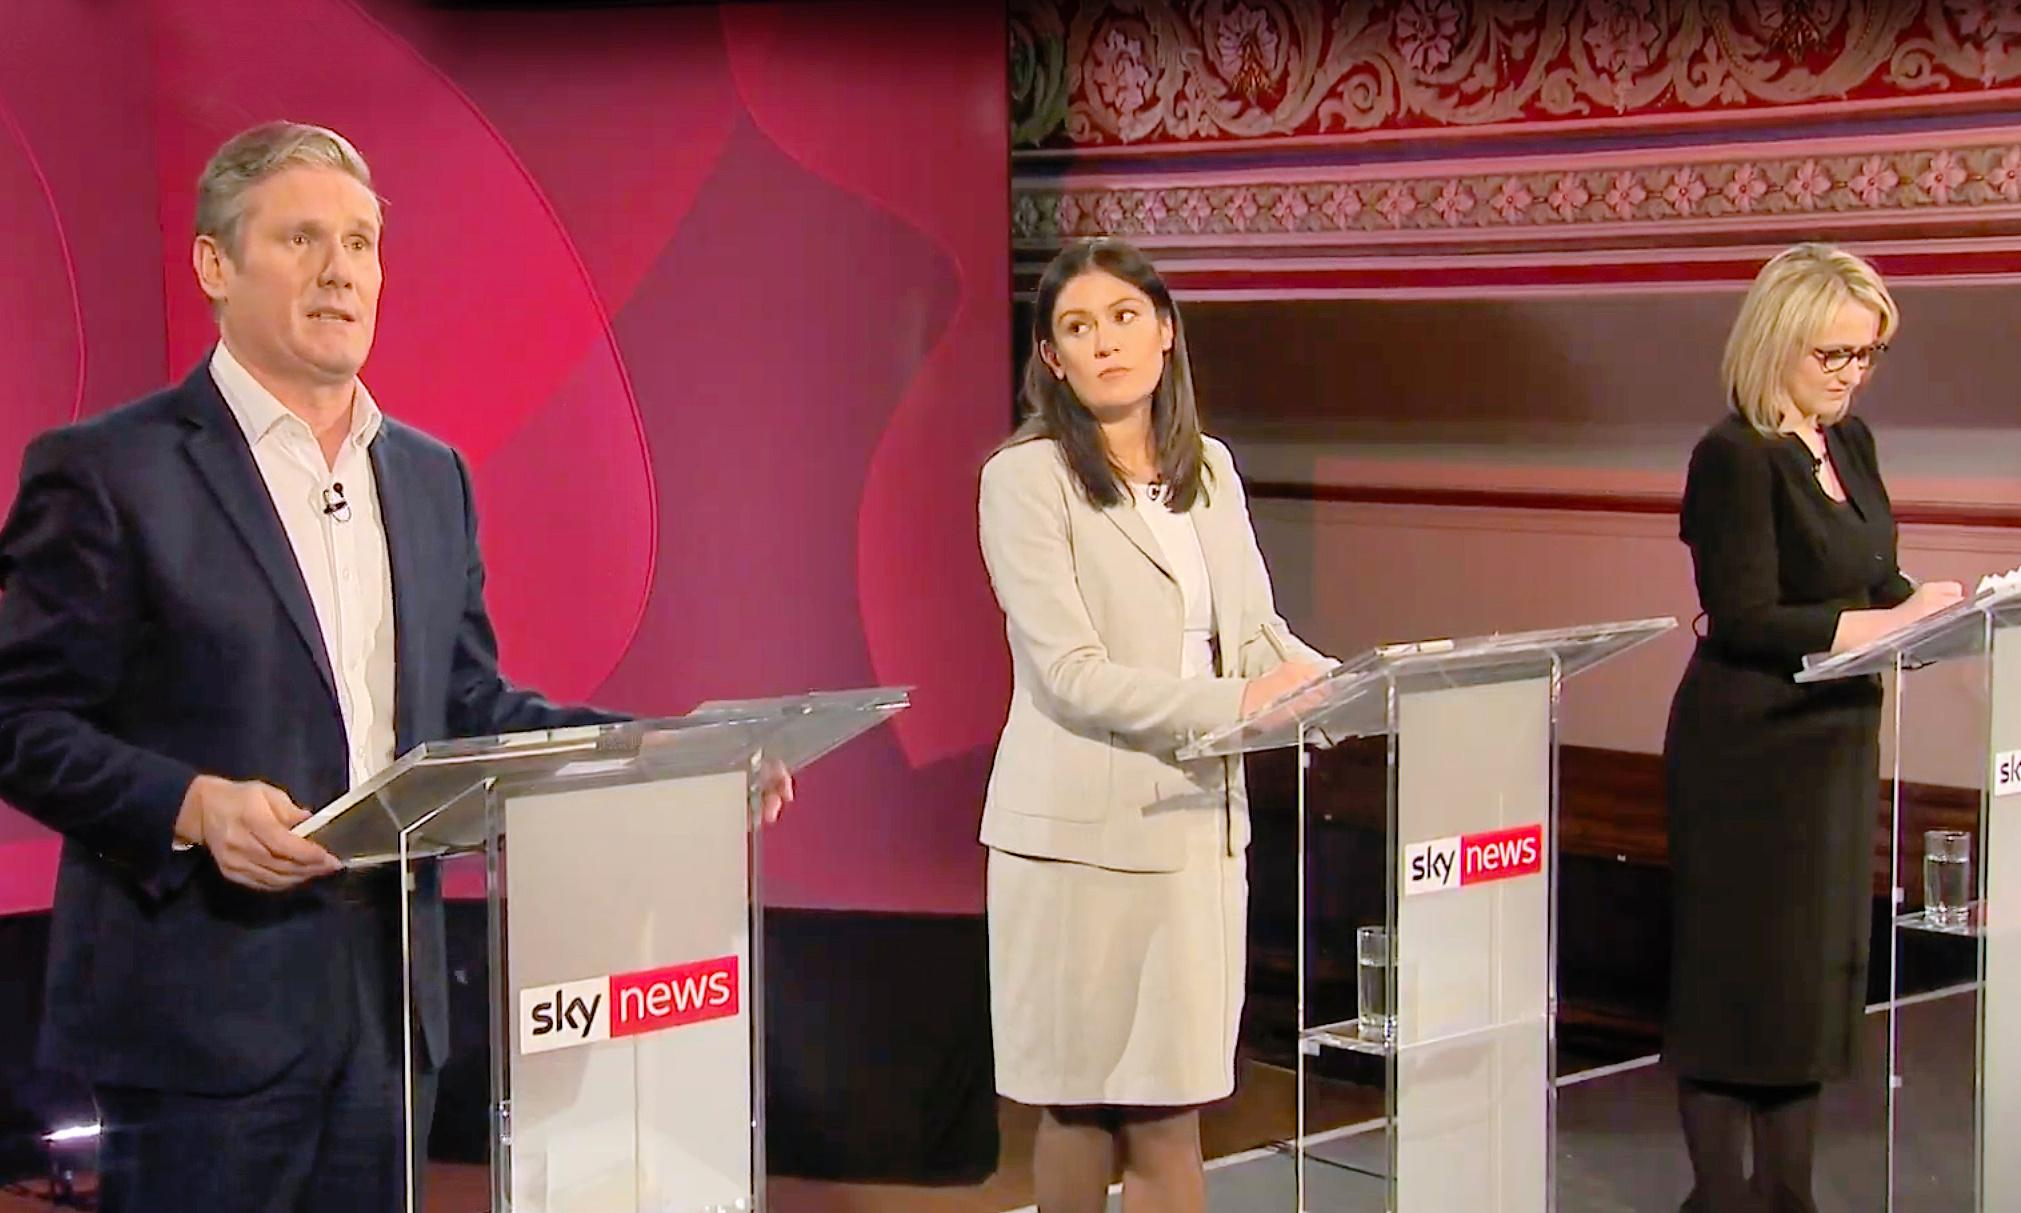 Nandy and Starmer clash over Brexit and antisemitism in TV debate